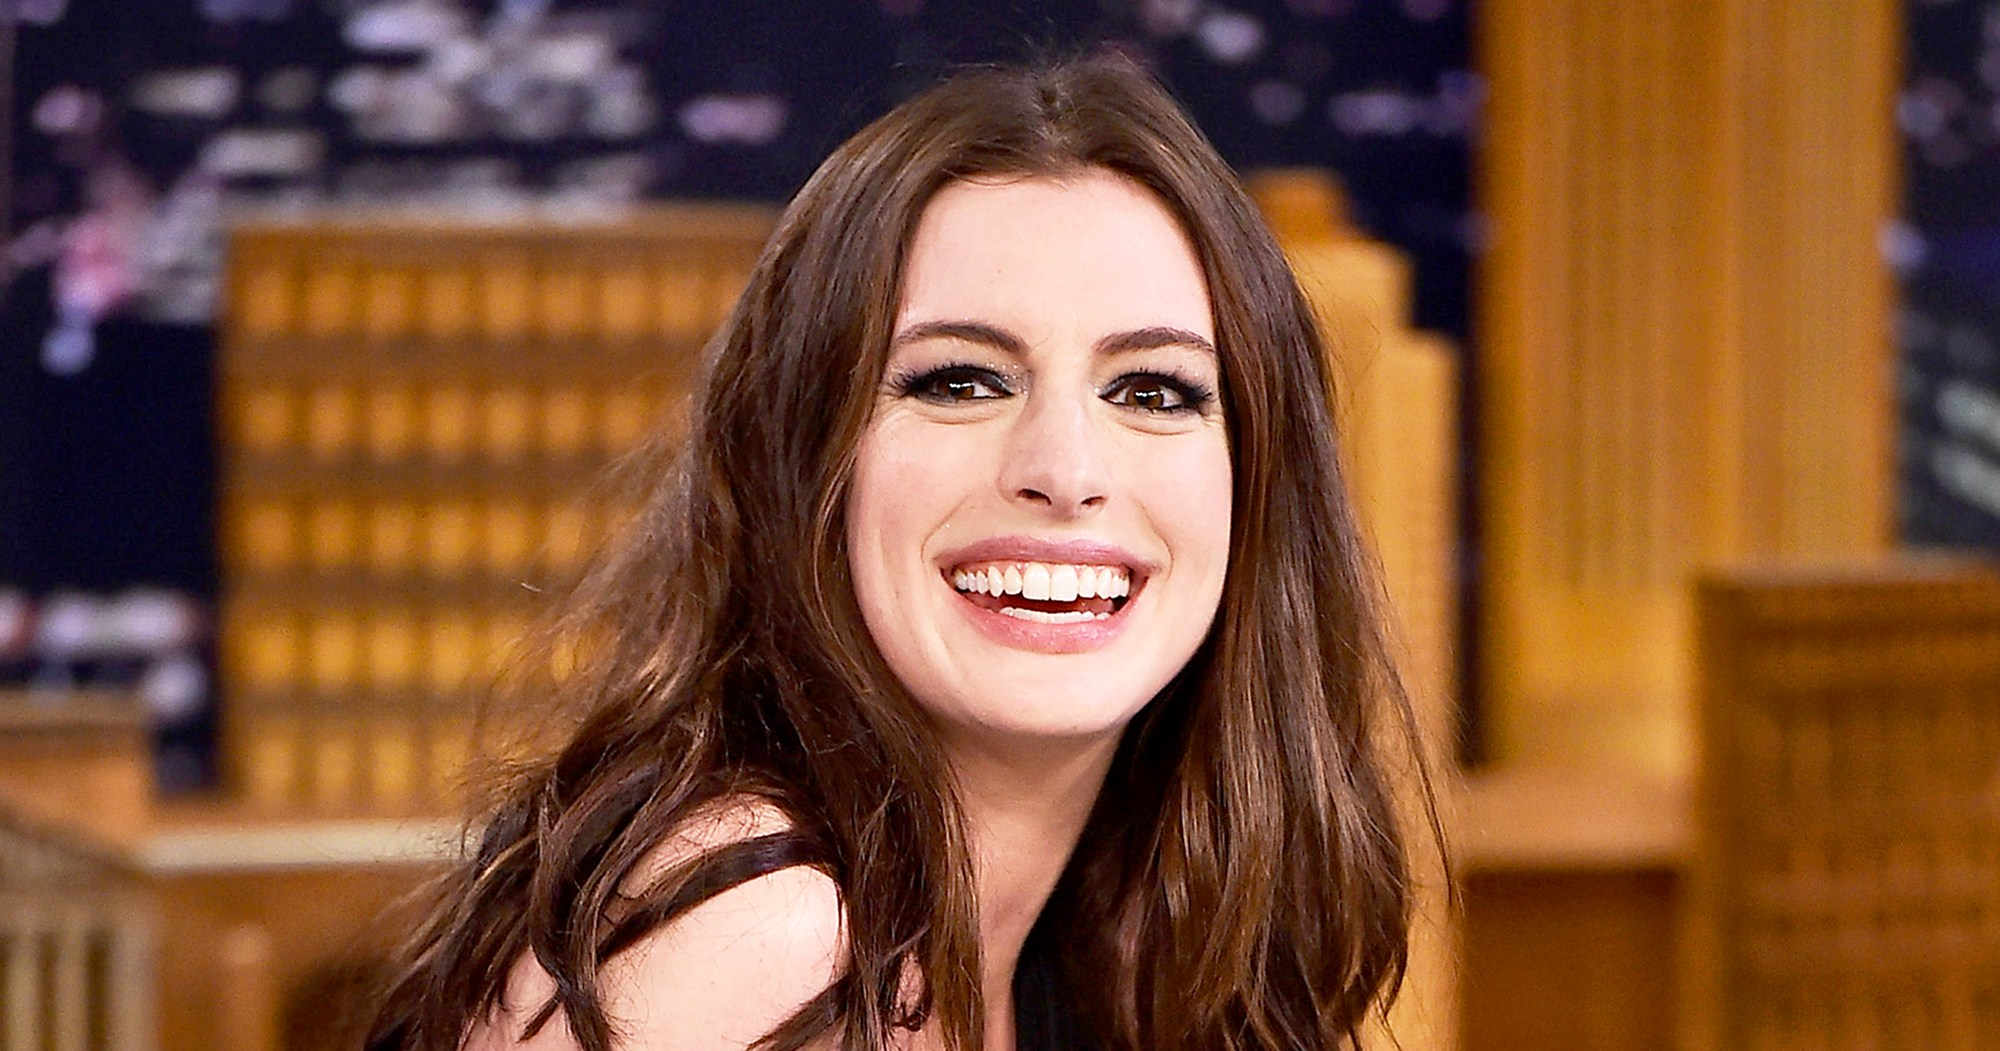 anne hathaway slams haters gains weight for role